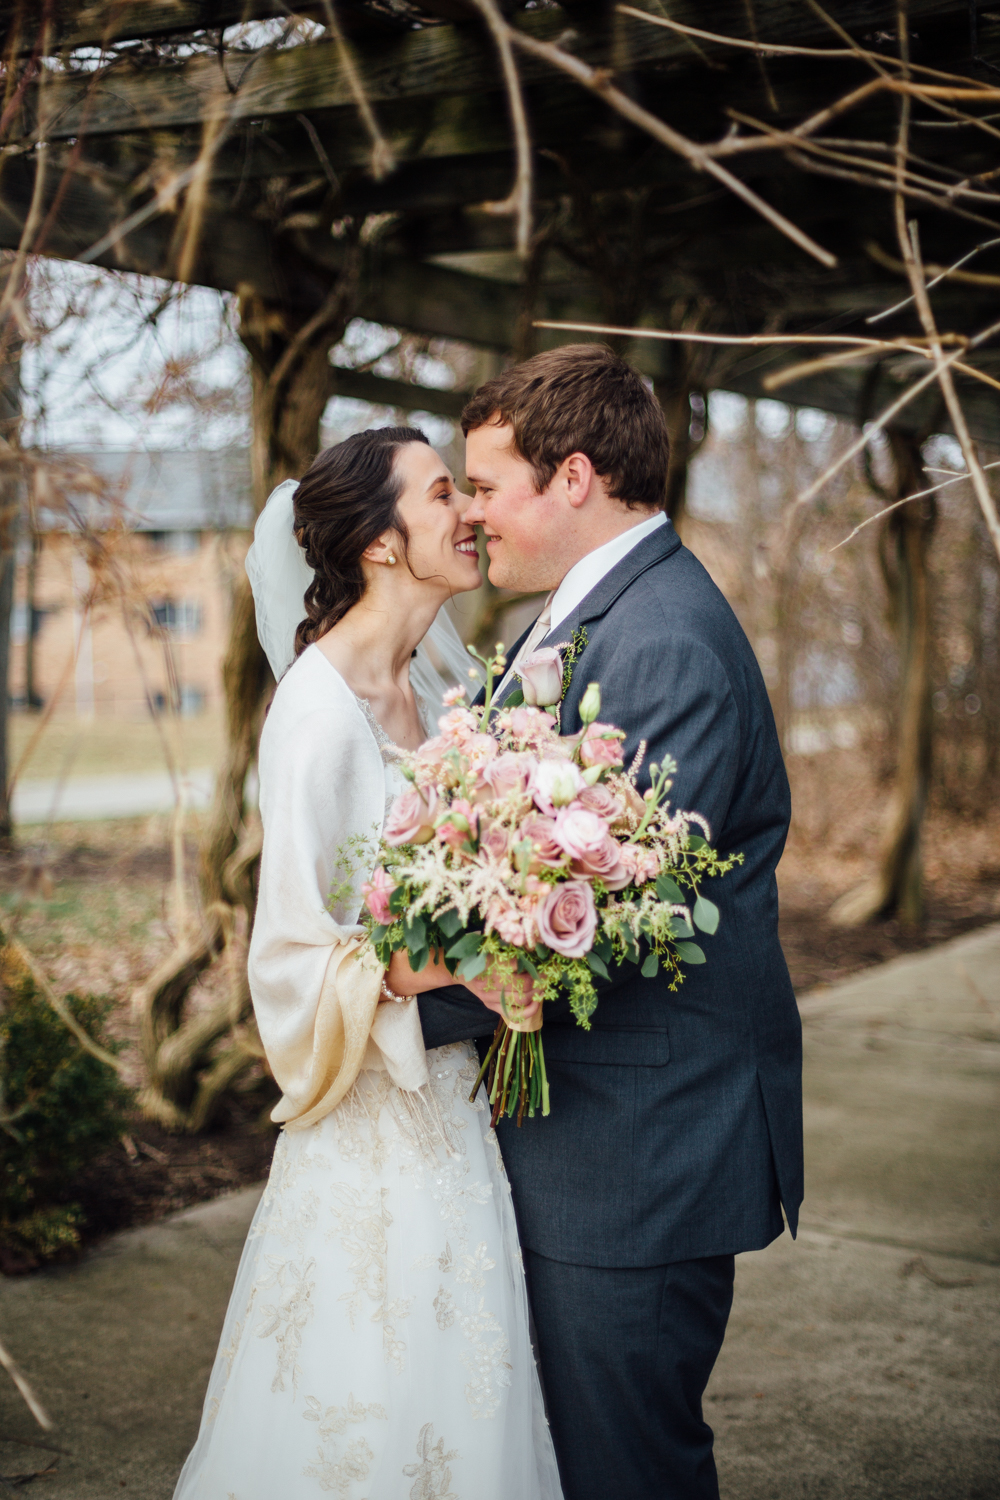 Fun, Intimate Spring Wedding by Corrie Mick Photography-54.jpg